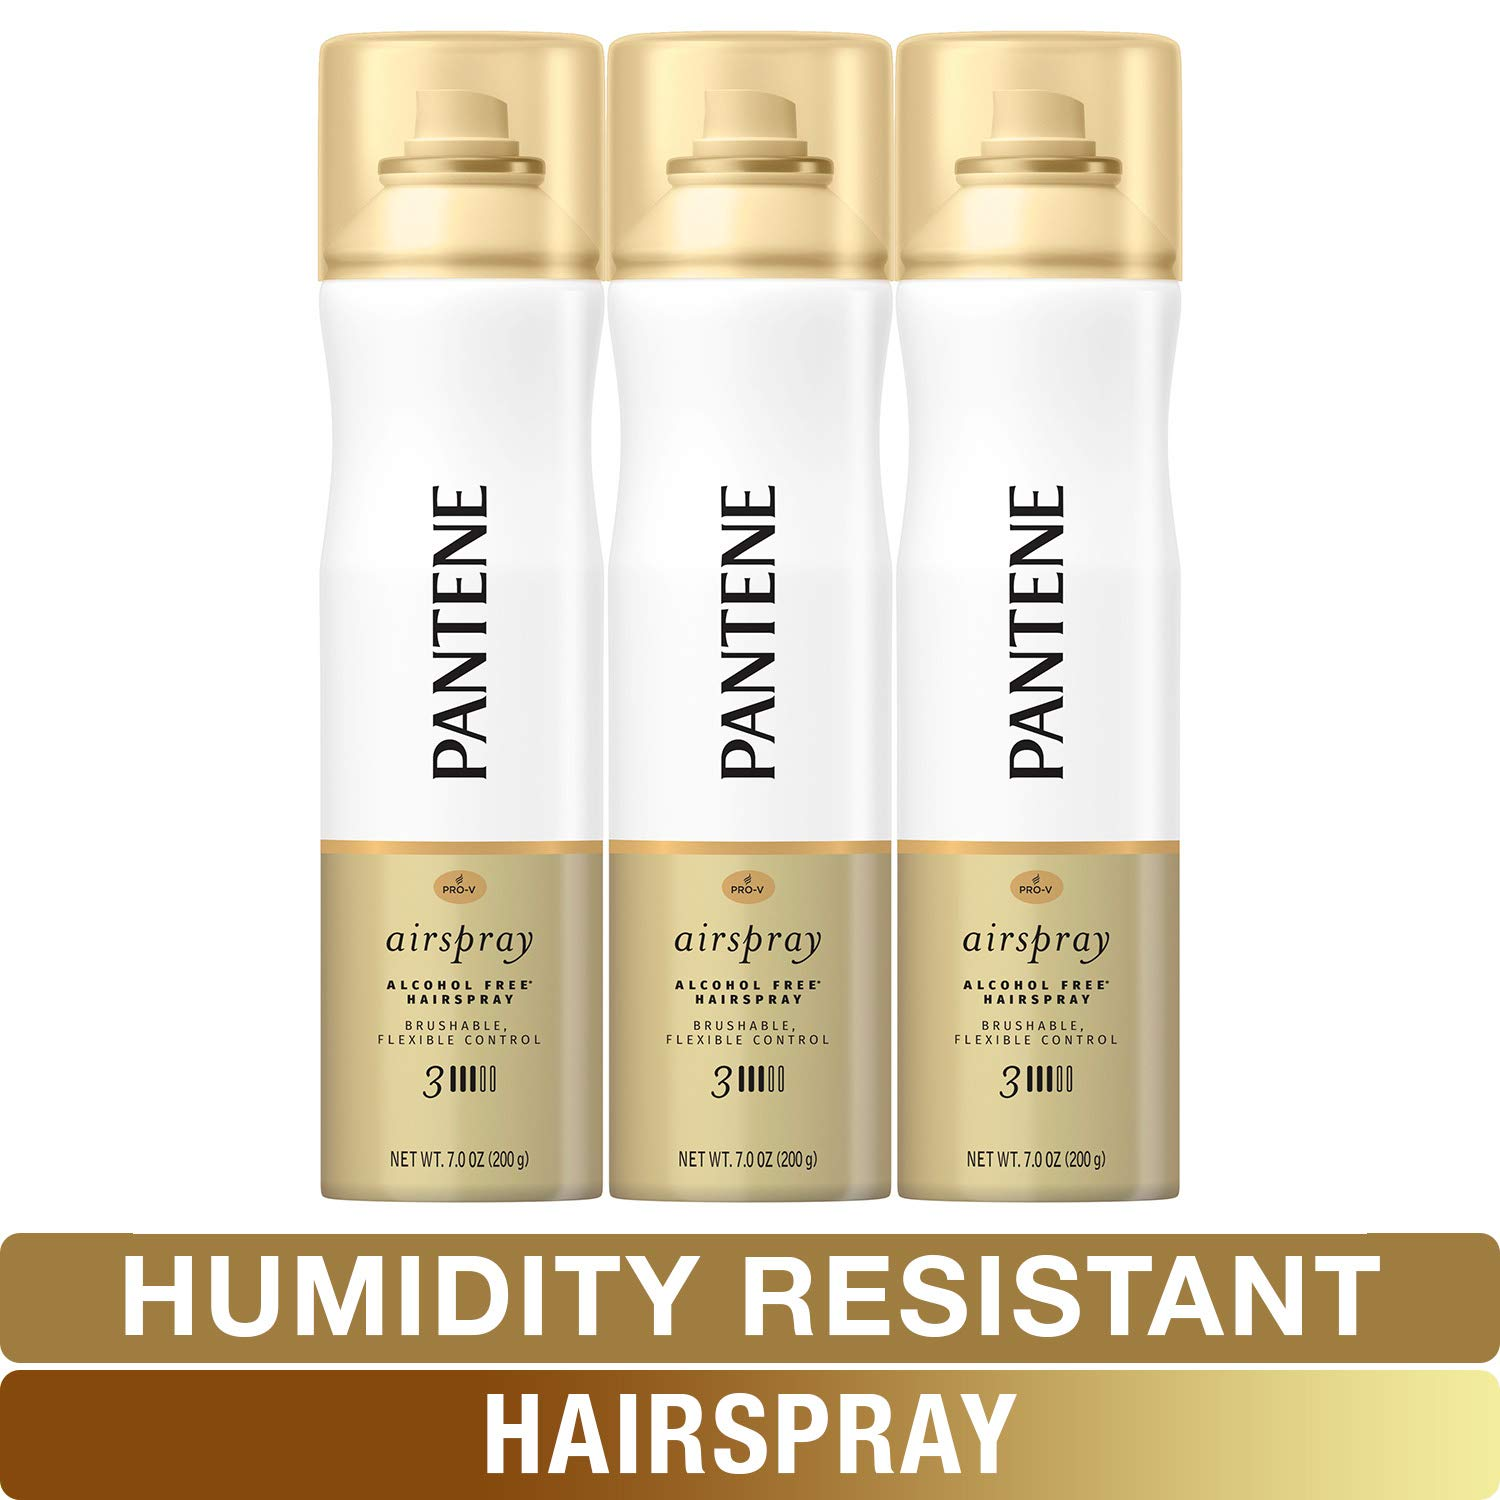 Pantene Hairspray, Smooth & Soft Finish, Pro-V Level 3 Airspray, Humidity Resistant, 7 Oz, Pack of 3 by Pantene